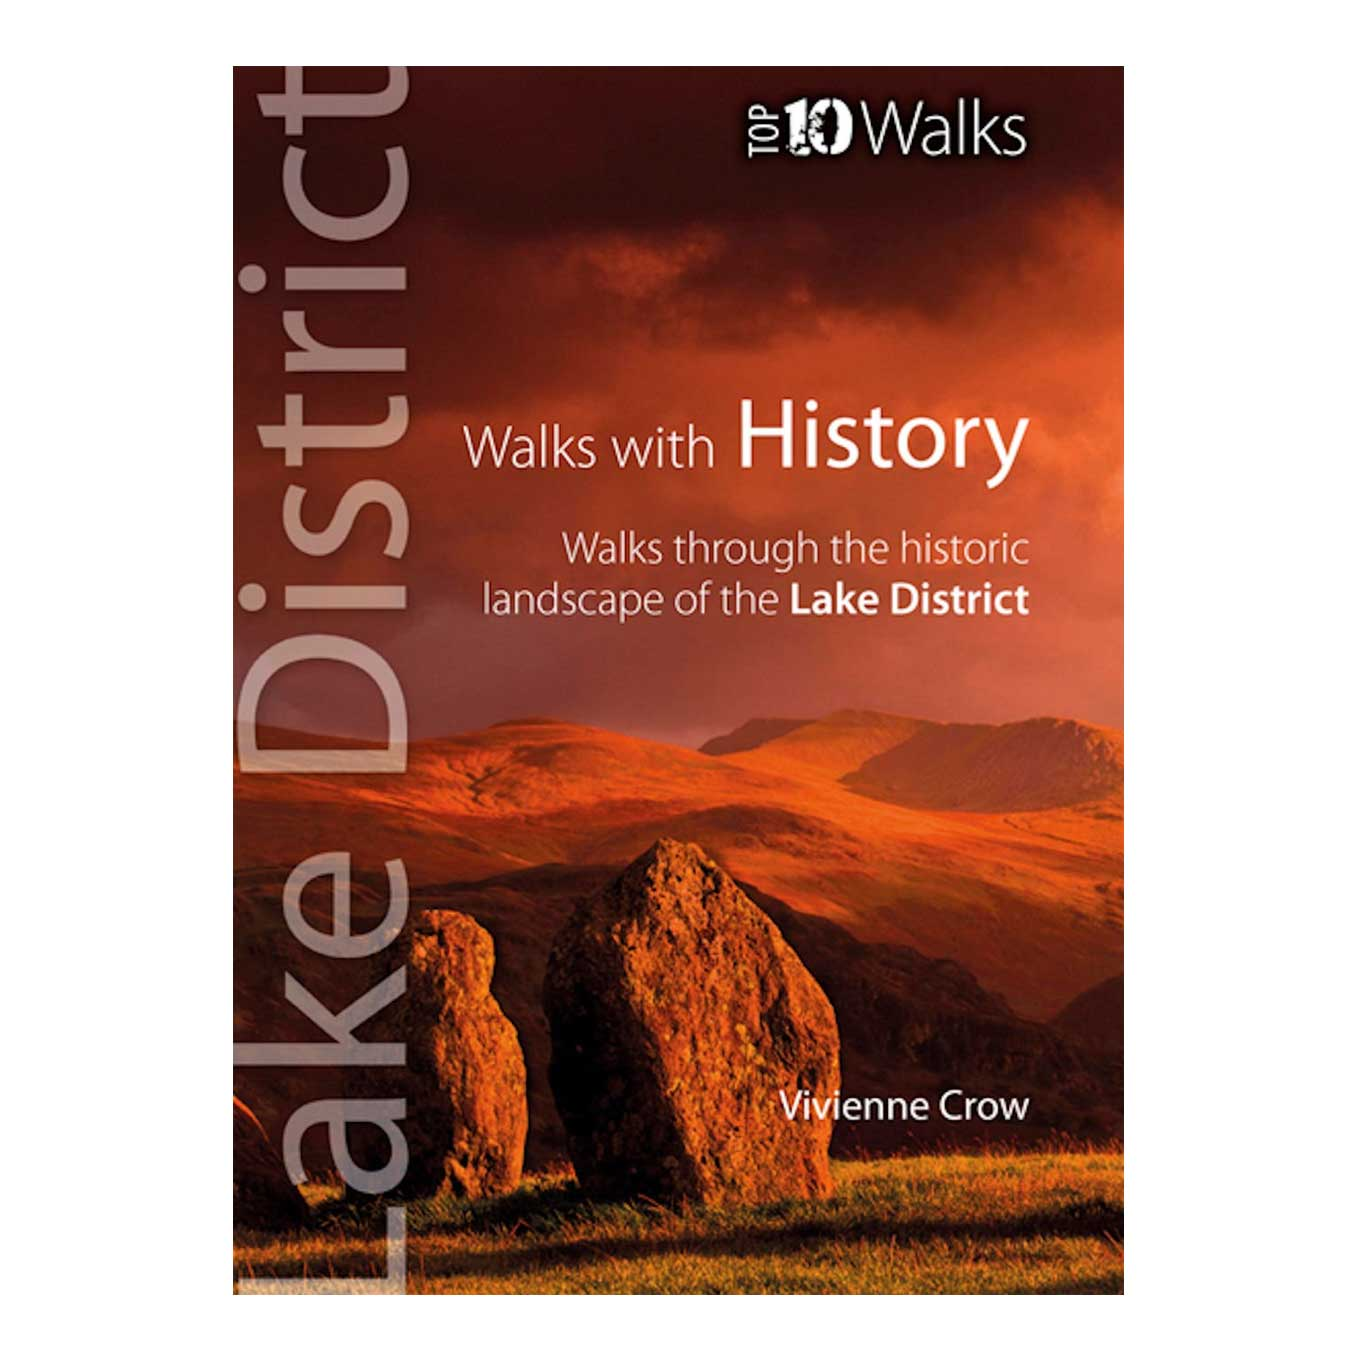 walks with history guidebook